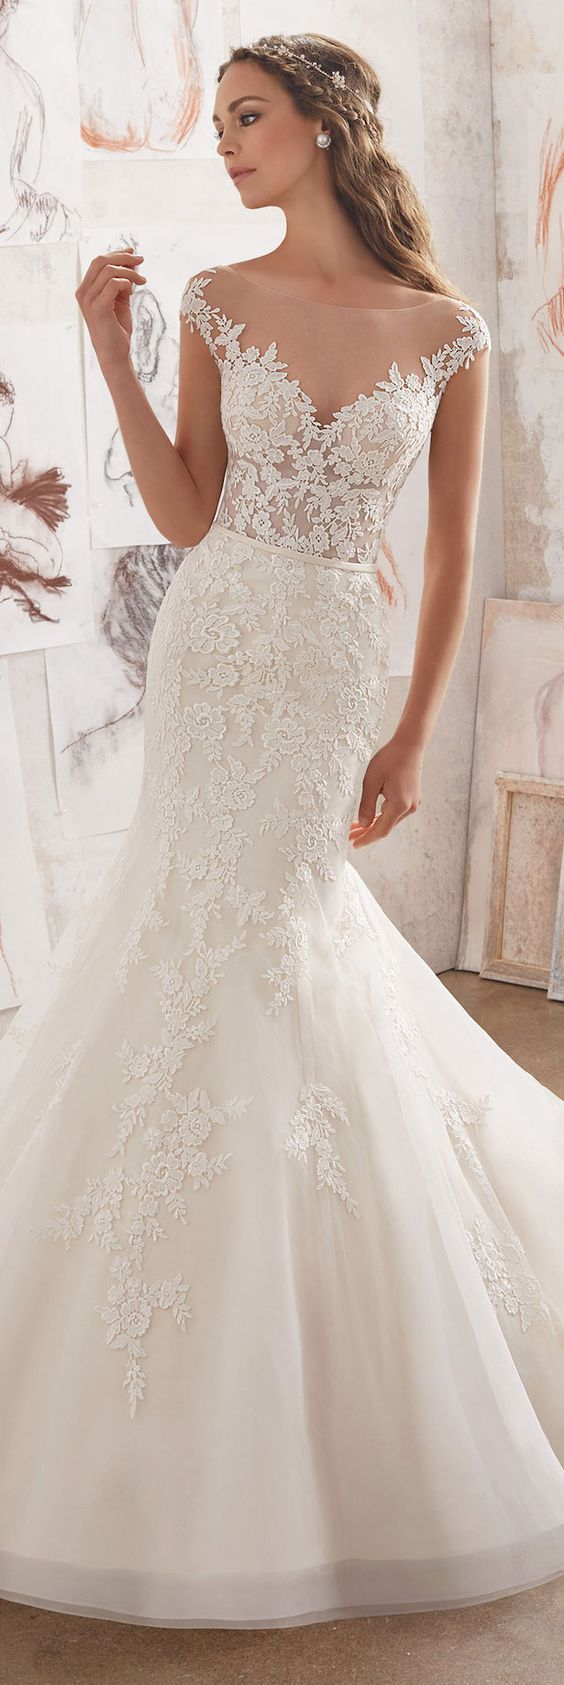 Wedding dress inspiration mori lee the dress pinterest